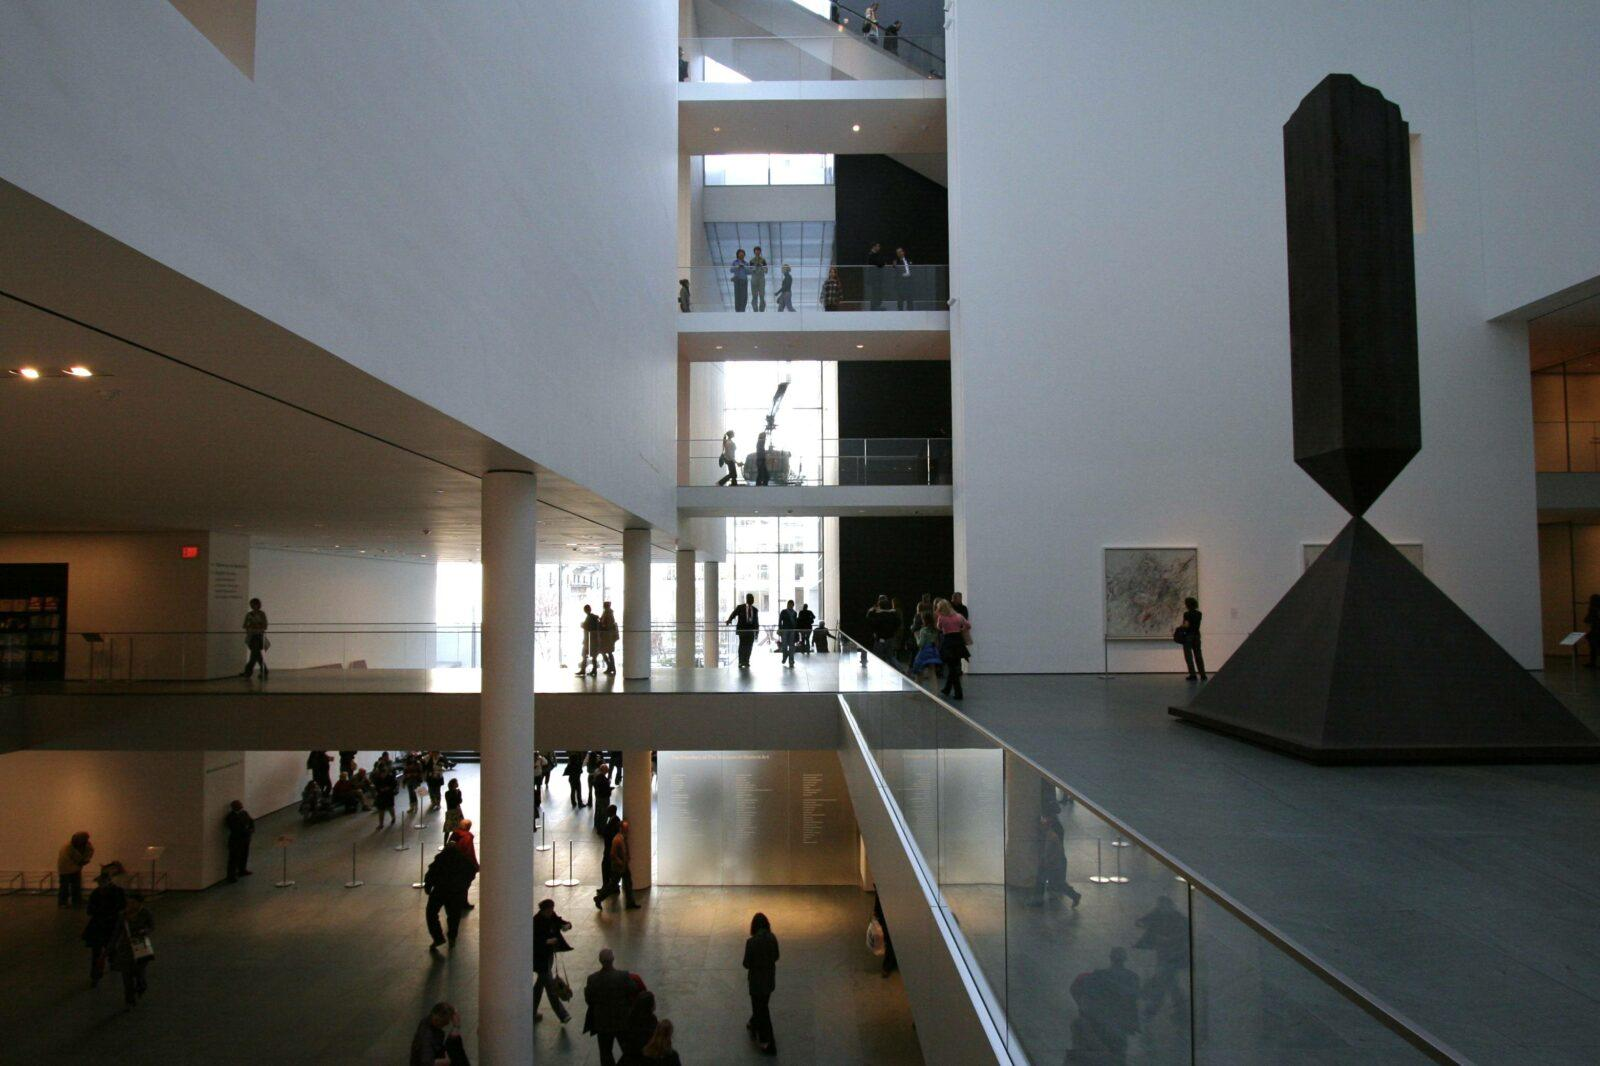 museum thesis A thesis hypothesizes an argument that will need to be proved it is not a self-evident statement about the artwork it is not a self-evident statement about the artwork developing a good thesis takes critical thought and is an essential step in your assignment.